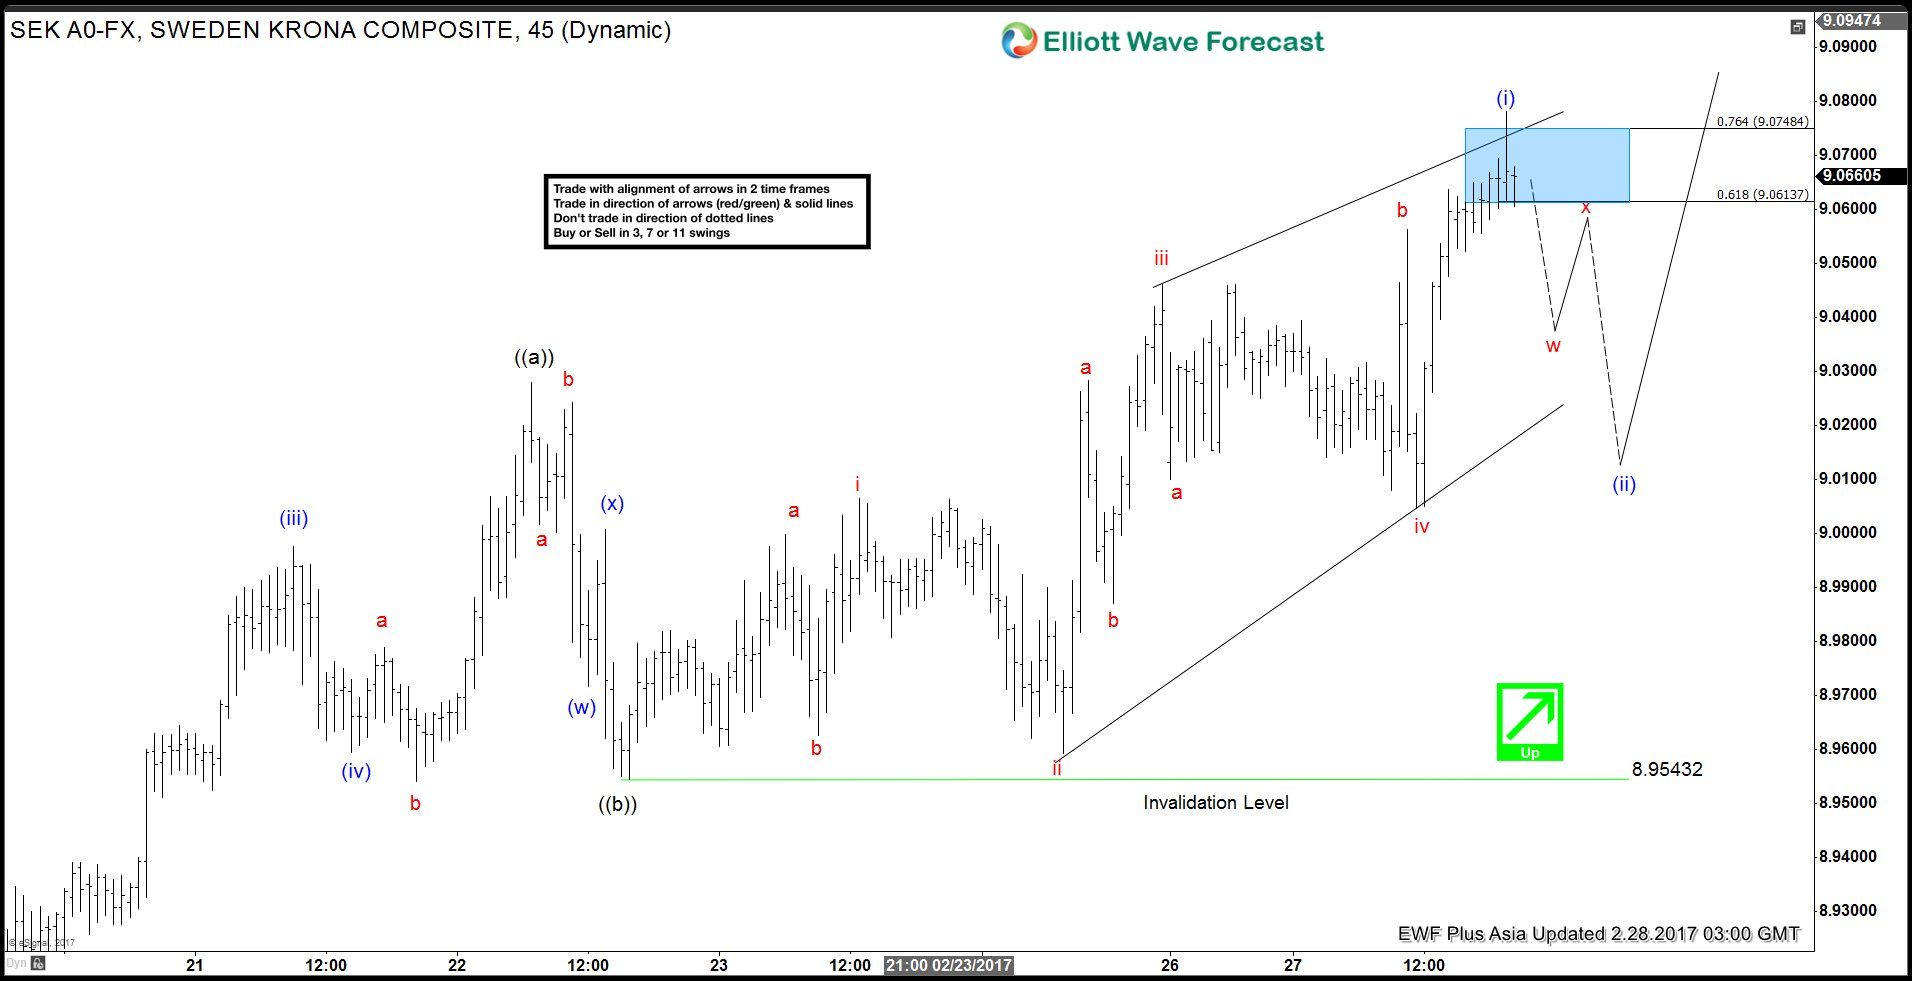 USDSEK 1 Hour Elliott Wave update 2/28/2017 Asia